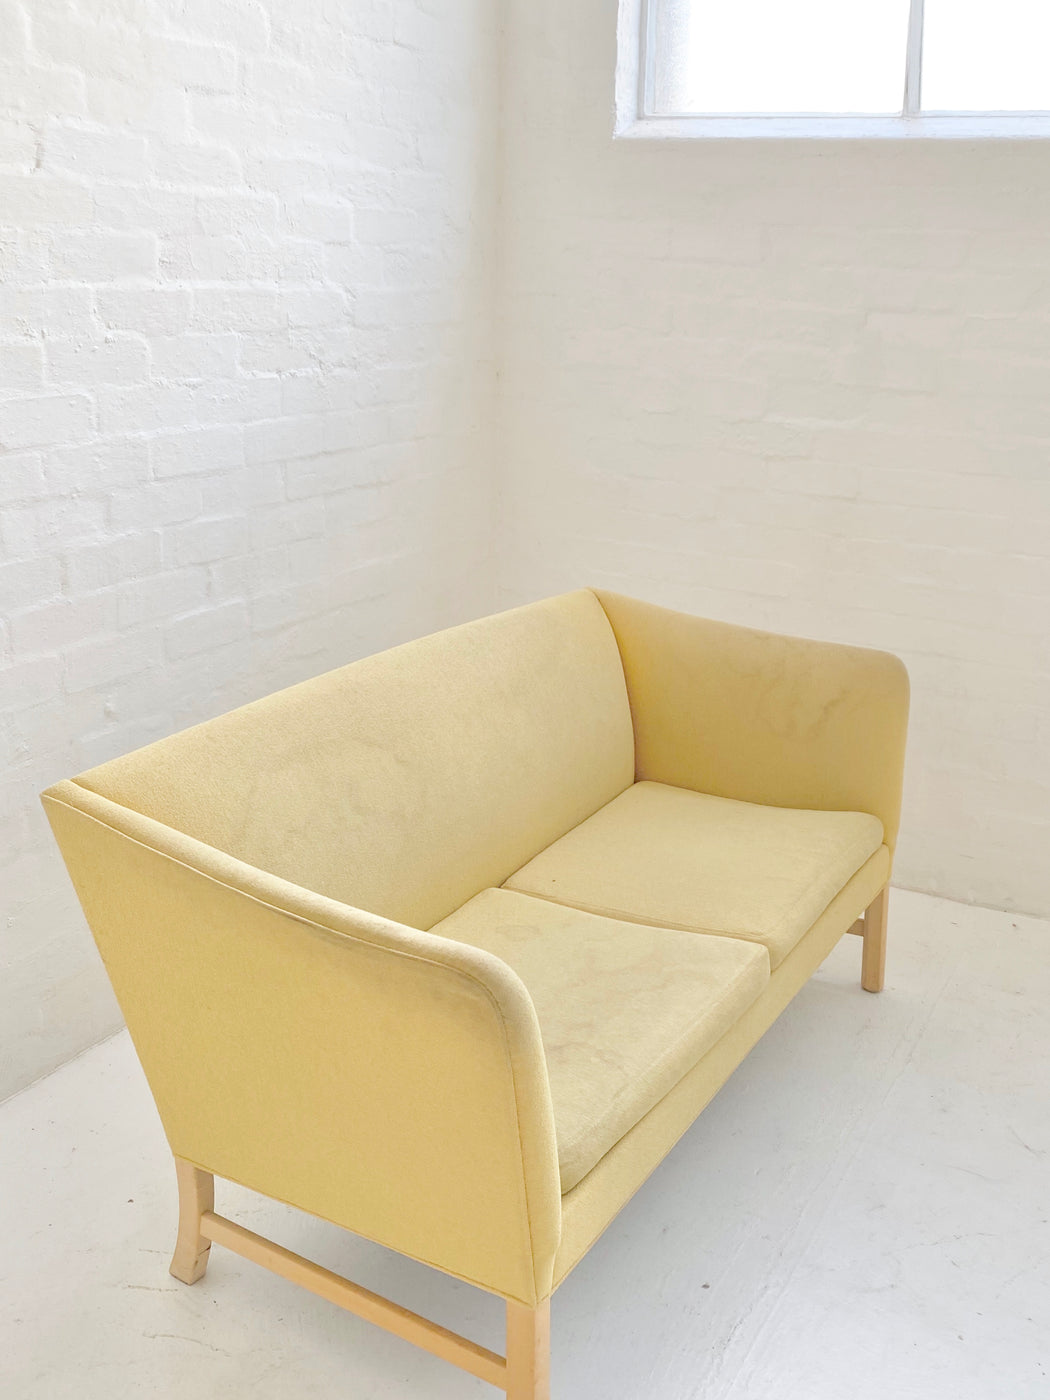 Ole Wanscher Model 'OW602' Sofa